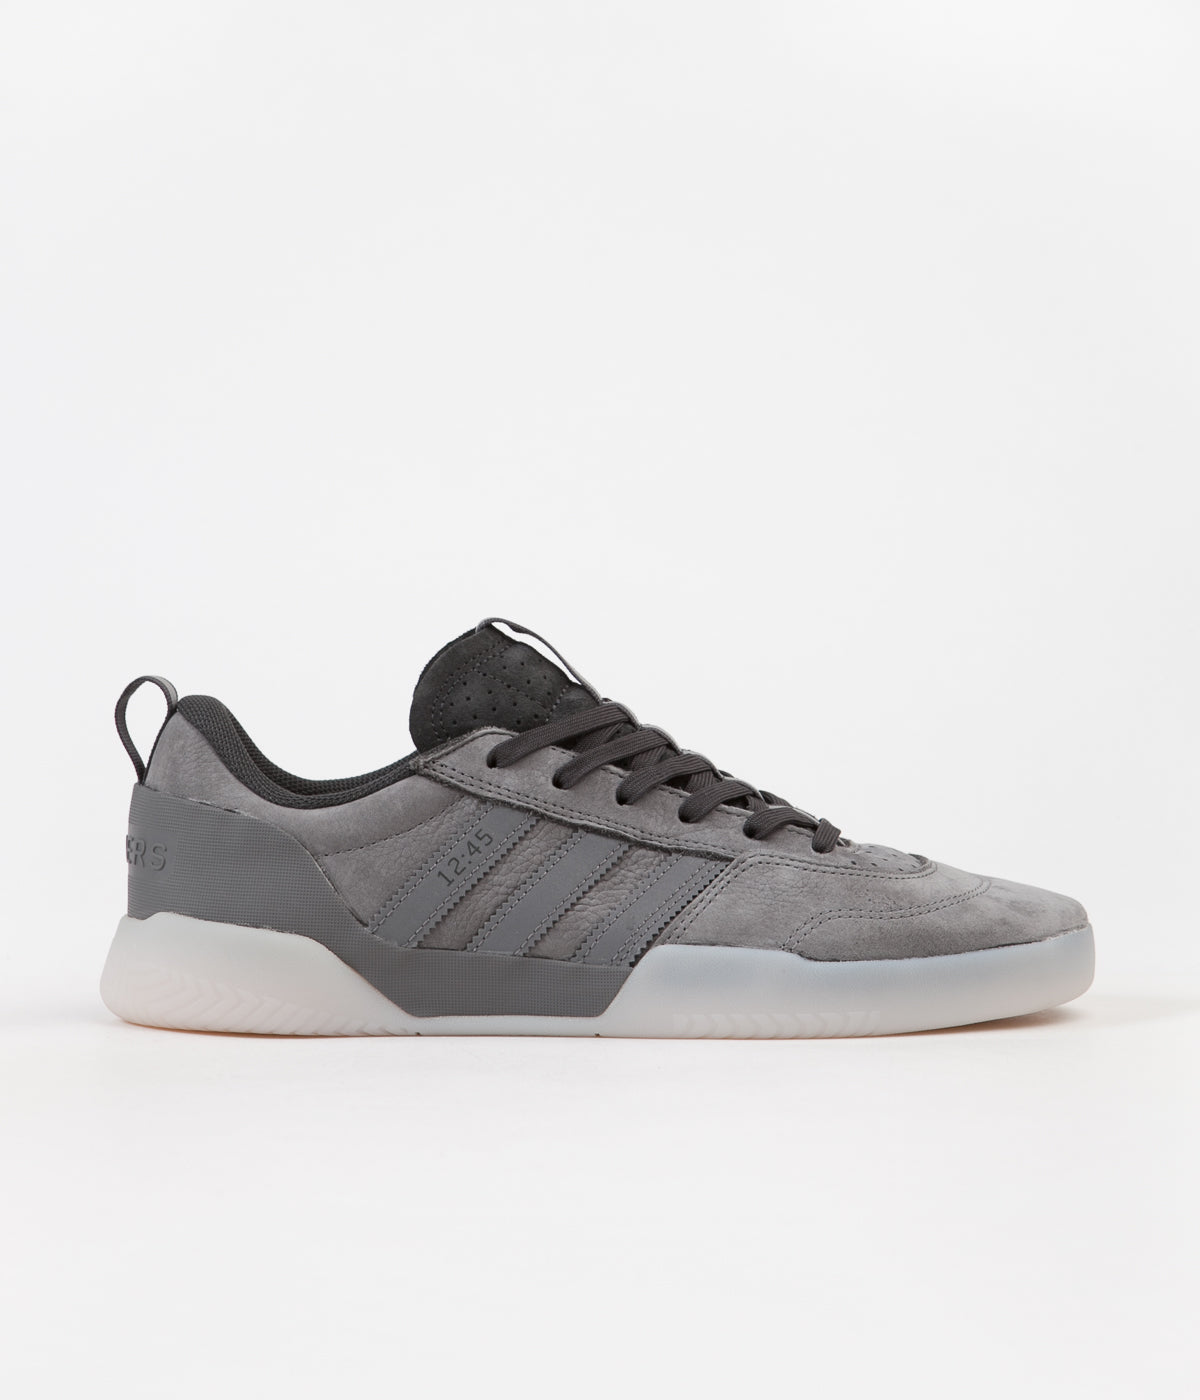 332ff3b28d9 Adidas x Numbers City Cup Shoes - Grey Four   Carbon   Grey One ...